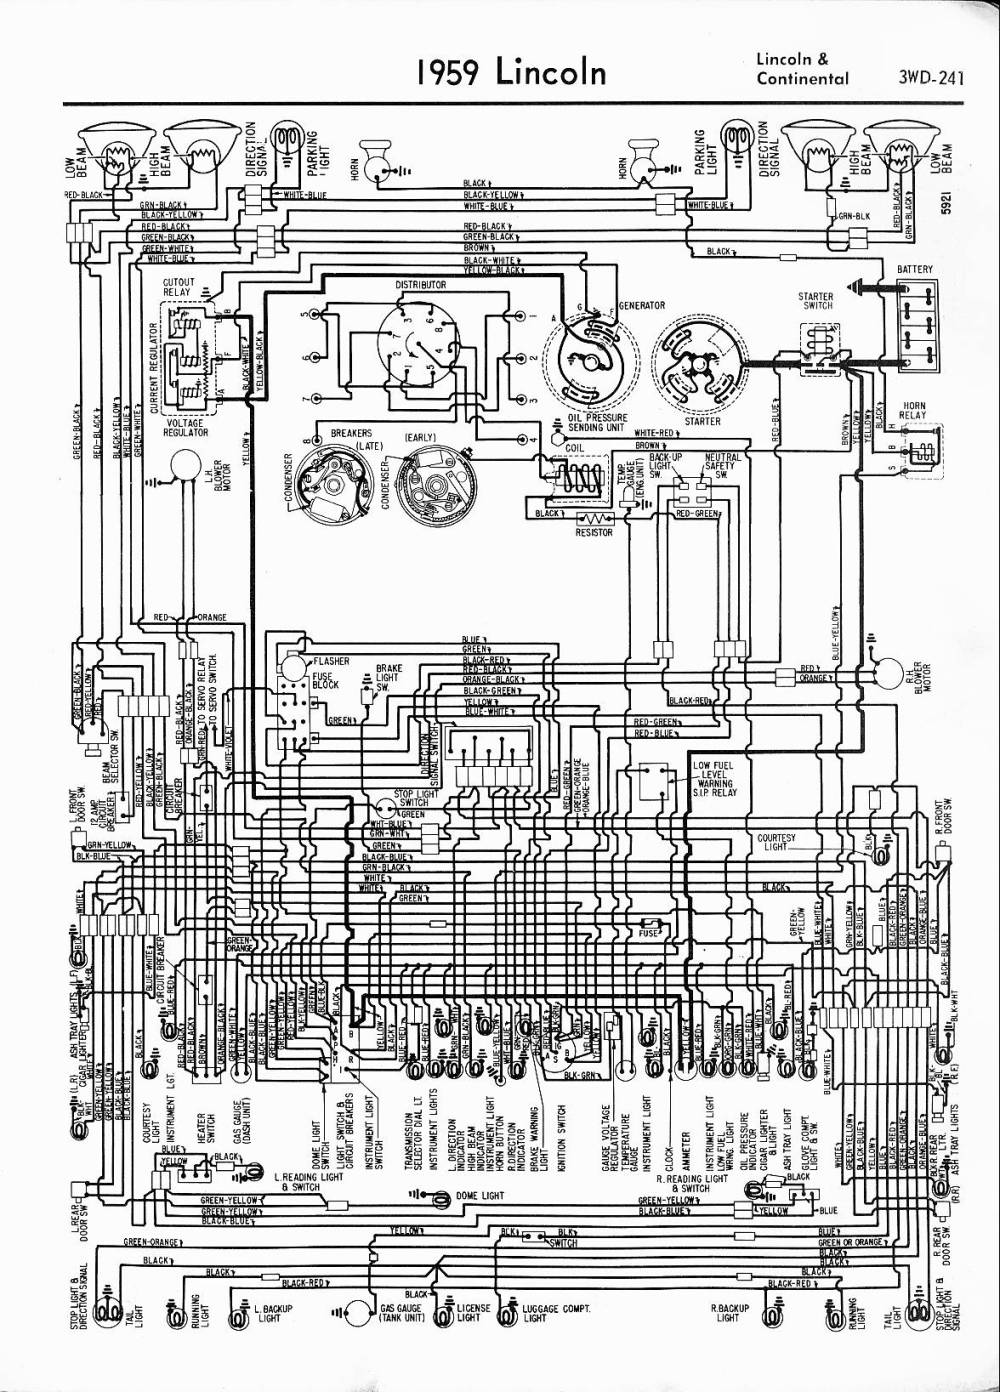 medium resolution of 1965 lincoln wiring diagram wiring diagram user 1965 lincoln continental fuse box